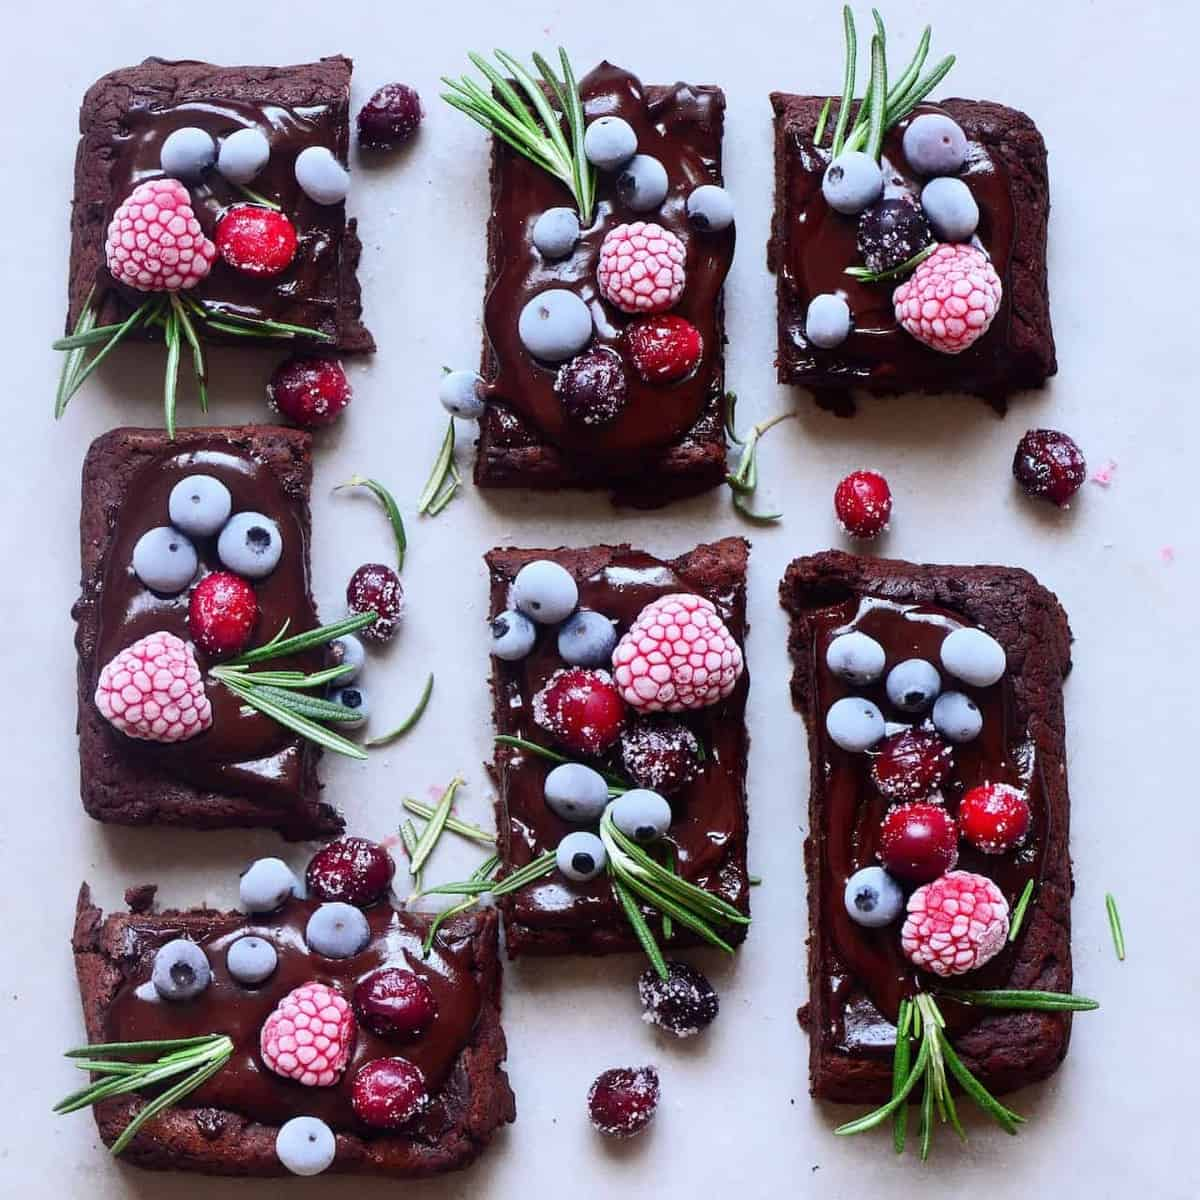 brownies topped with frozen berries and rosemary